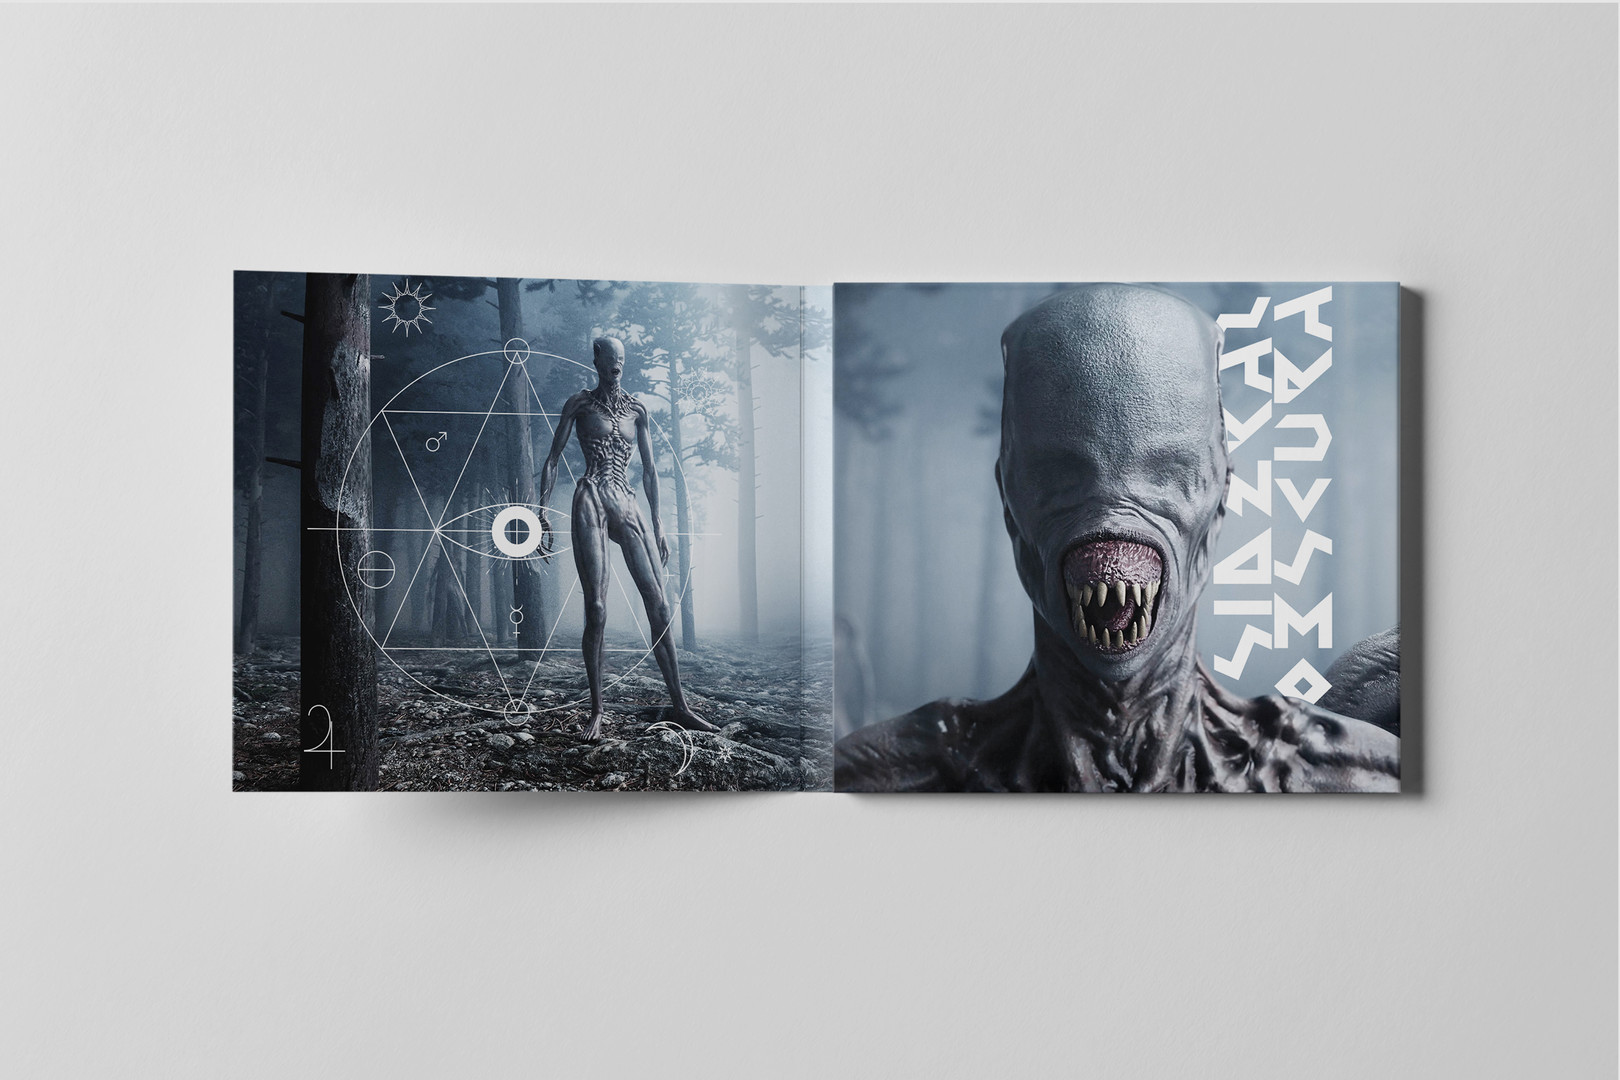 Sideral Obscura digipack 2